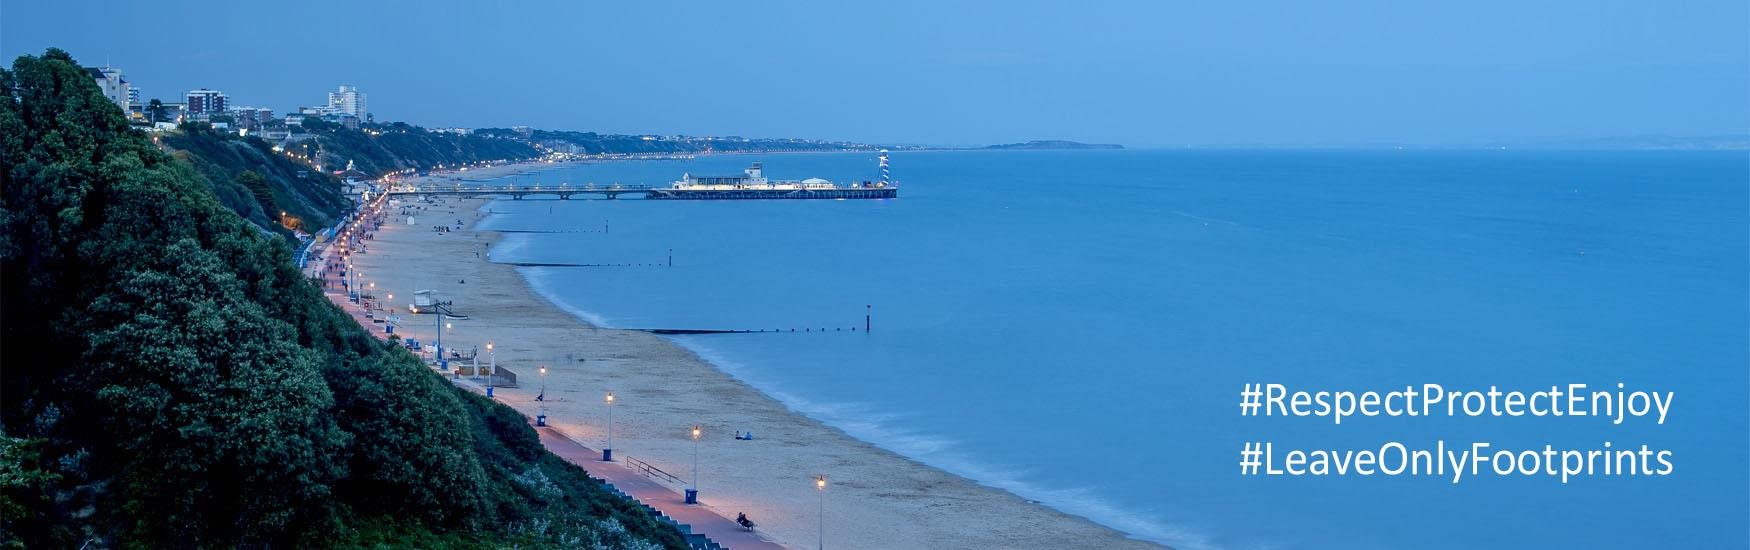 Bournemouth Bay at dusk with text Respect, Protect, Enjoy.